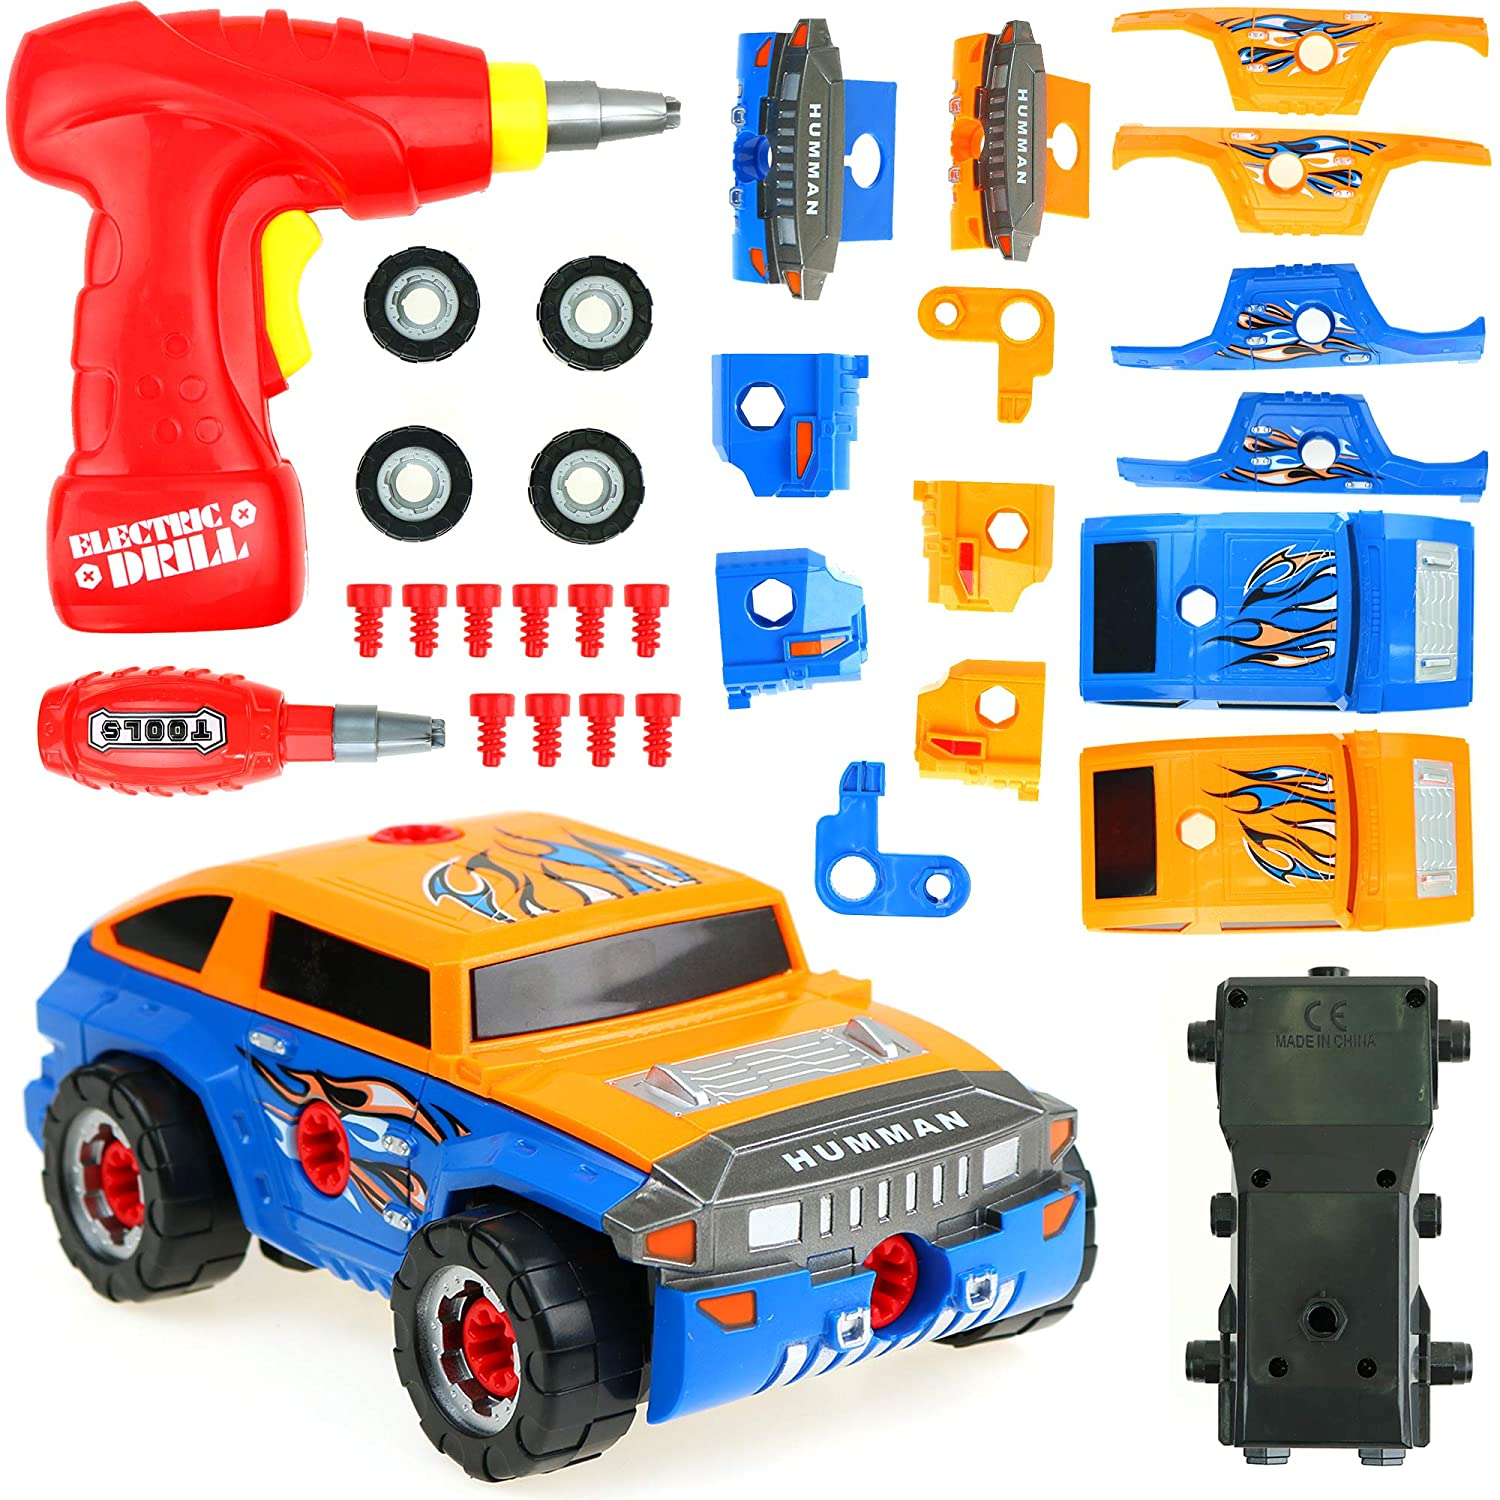 Build Your Car >> Big Mo S Toys Building Car Build Your Vehicle Racing Cars Project Gift Kit Present For Boys And Toddlers